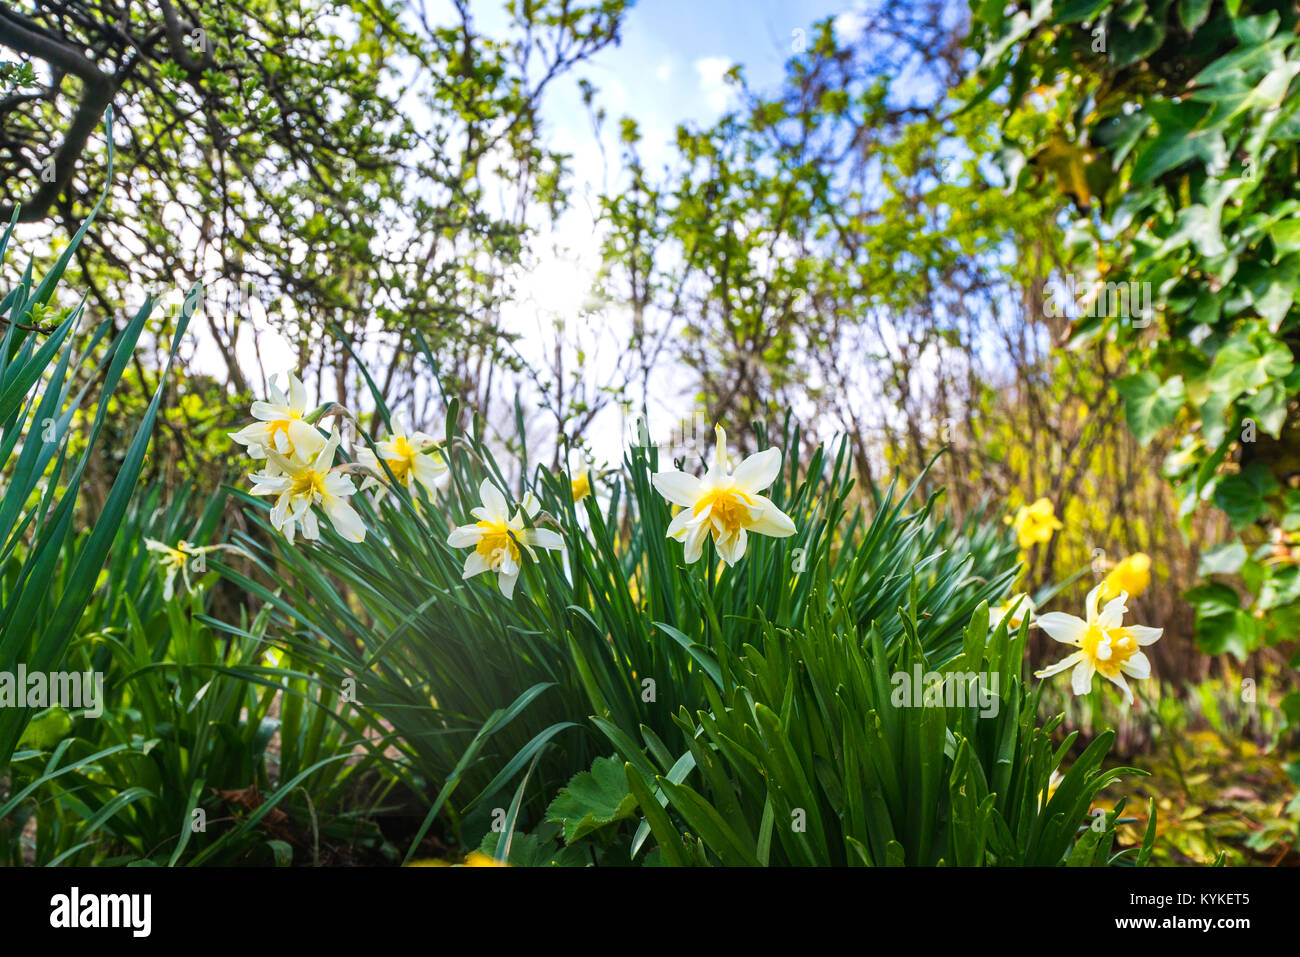 Daffodil flowers in white colors in a green garden in the spring - Stock Image